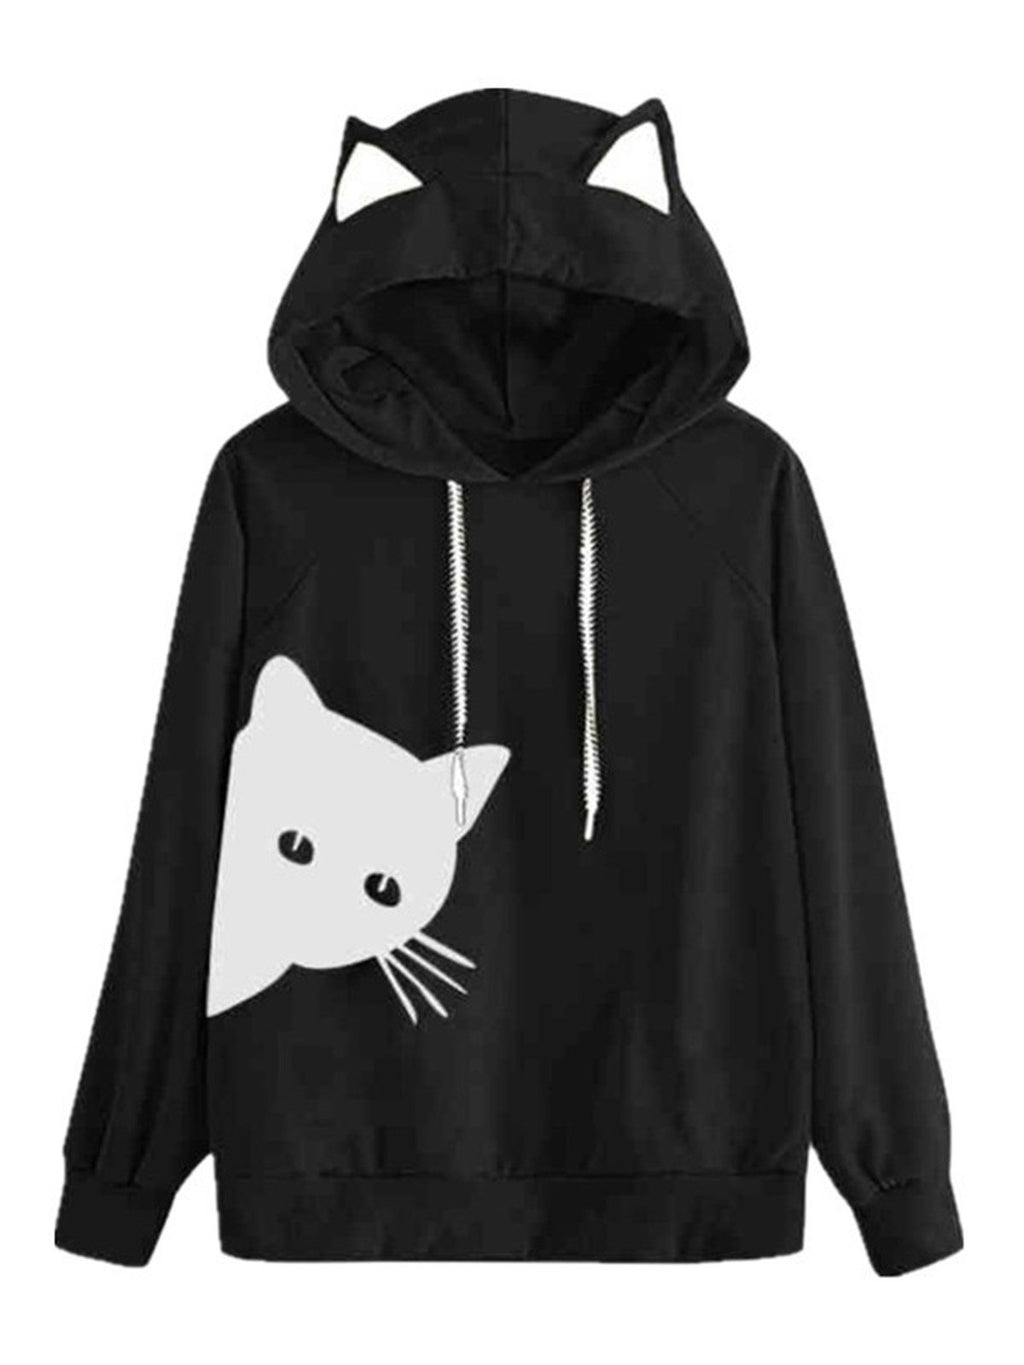 Kitten Print Hooded Long-Sleeved Sweatshirt